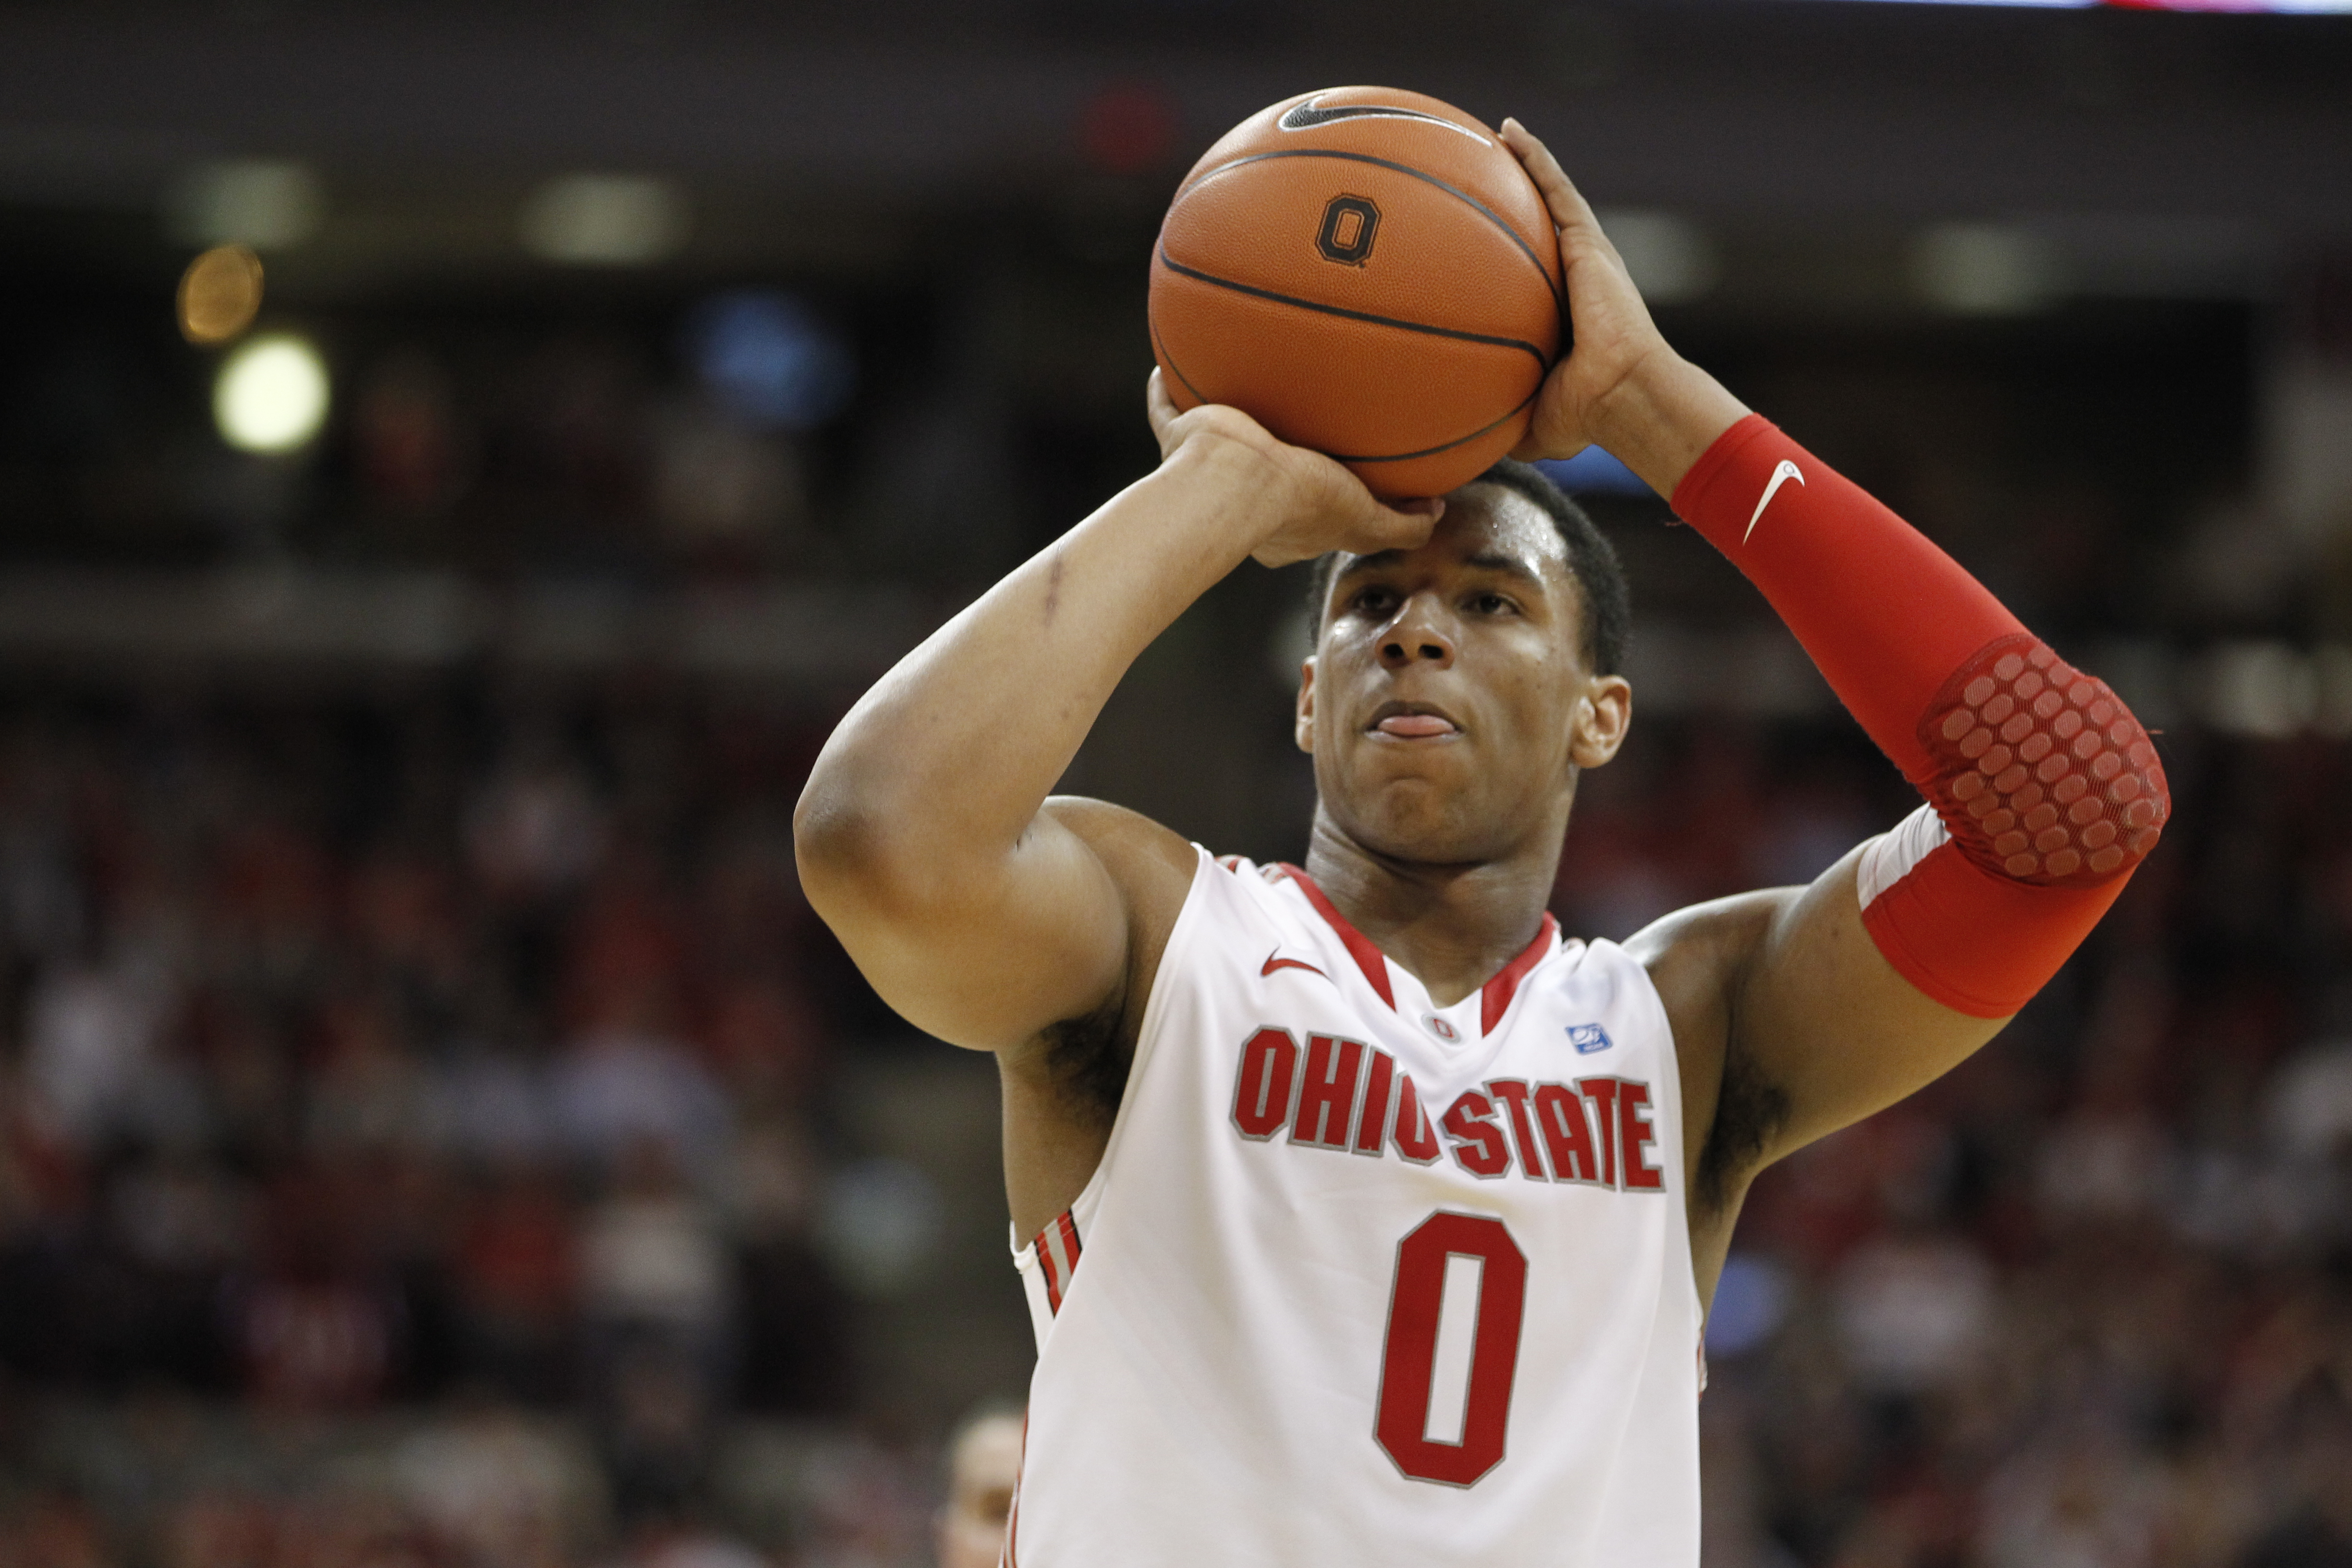 COLUMBUS, OH - FEBRUARY 15:  Jared Sullinger #0 of the Ohio State Buckeyes shoots a free throw while playing the Michigan State Spartans on February 15, 2011 at Value City Arena in Columbus, Ohio.  (Photo by Gregory Shamus/Getty Images)